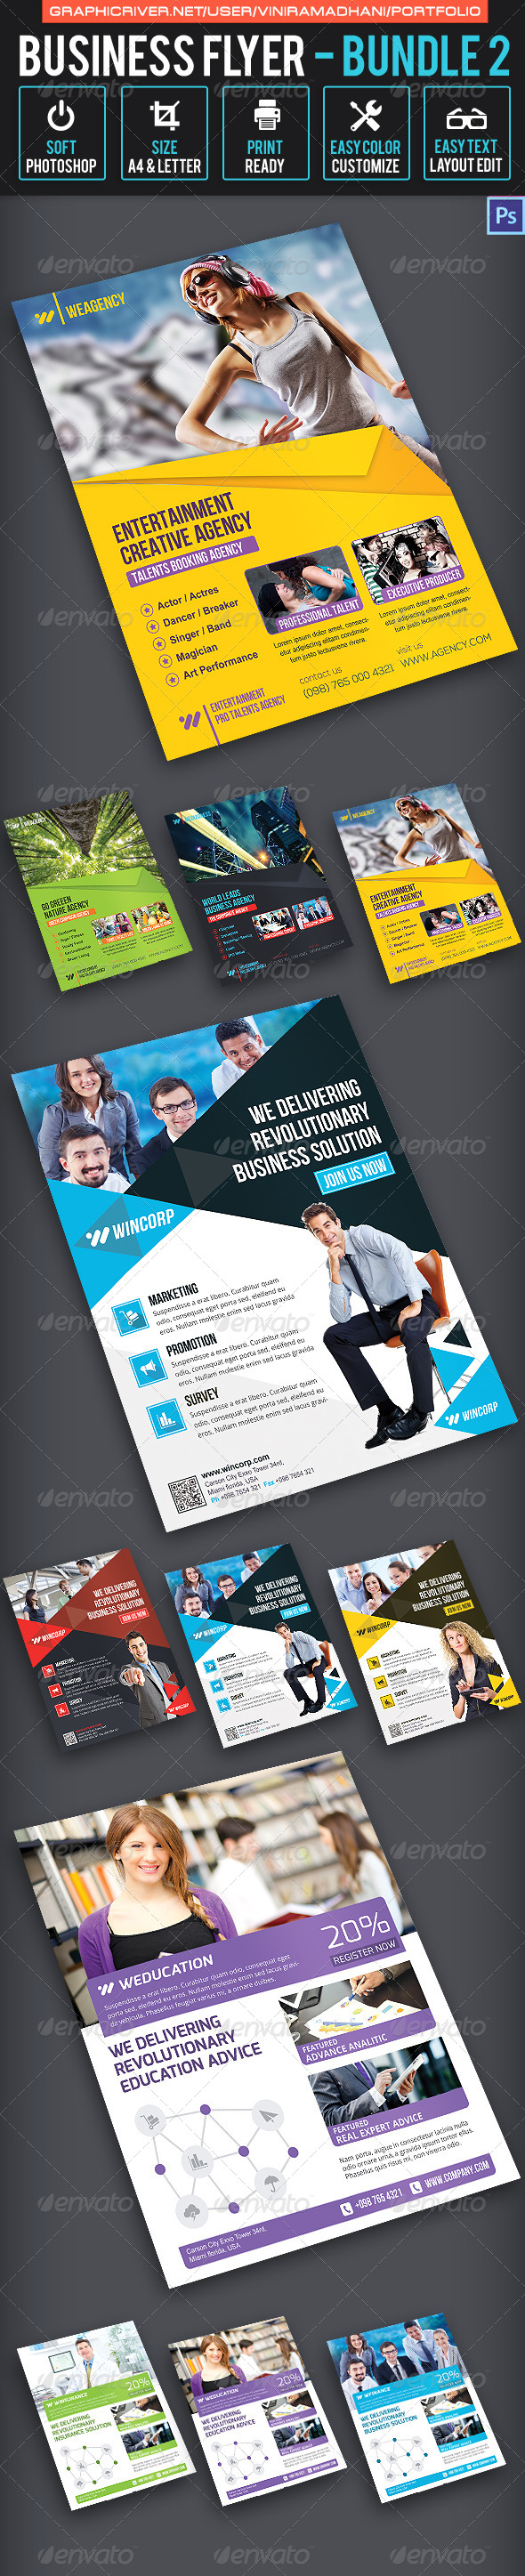 GraphicRiver Business Flyer Bundle 2 7325578